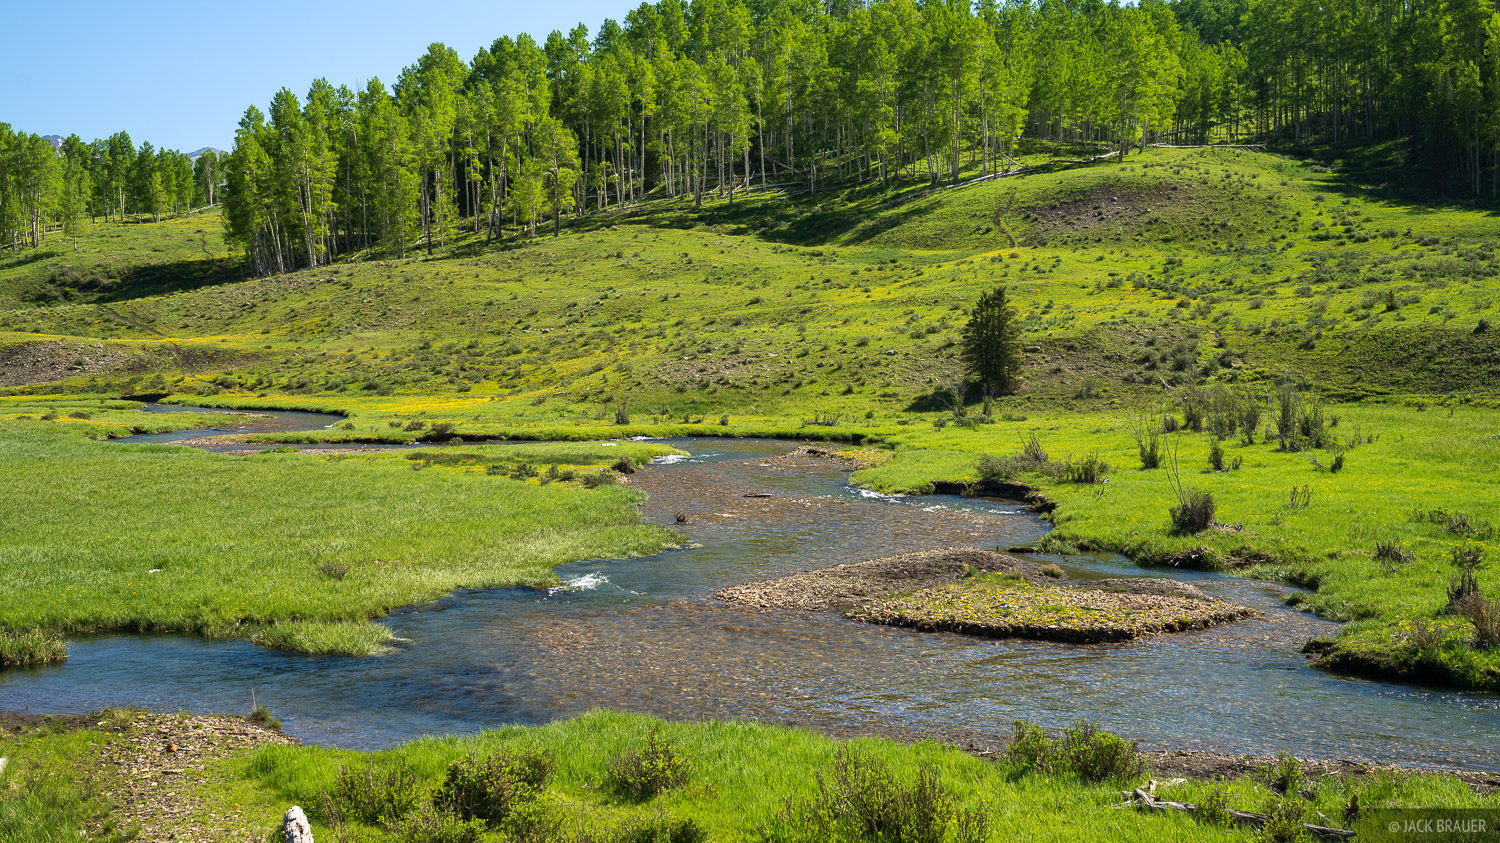 A lovely creek meandering through a green mountain meadow in the San Miguel Range.